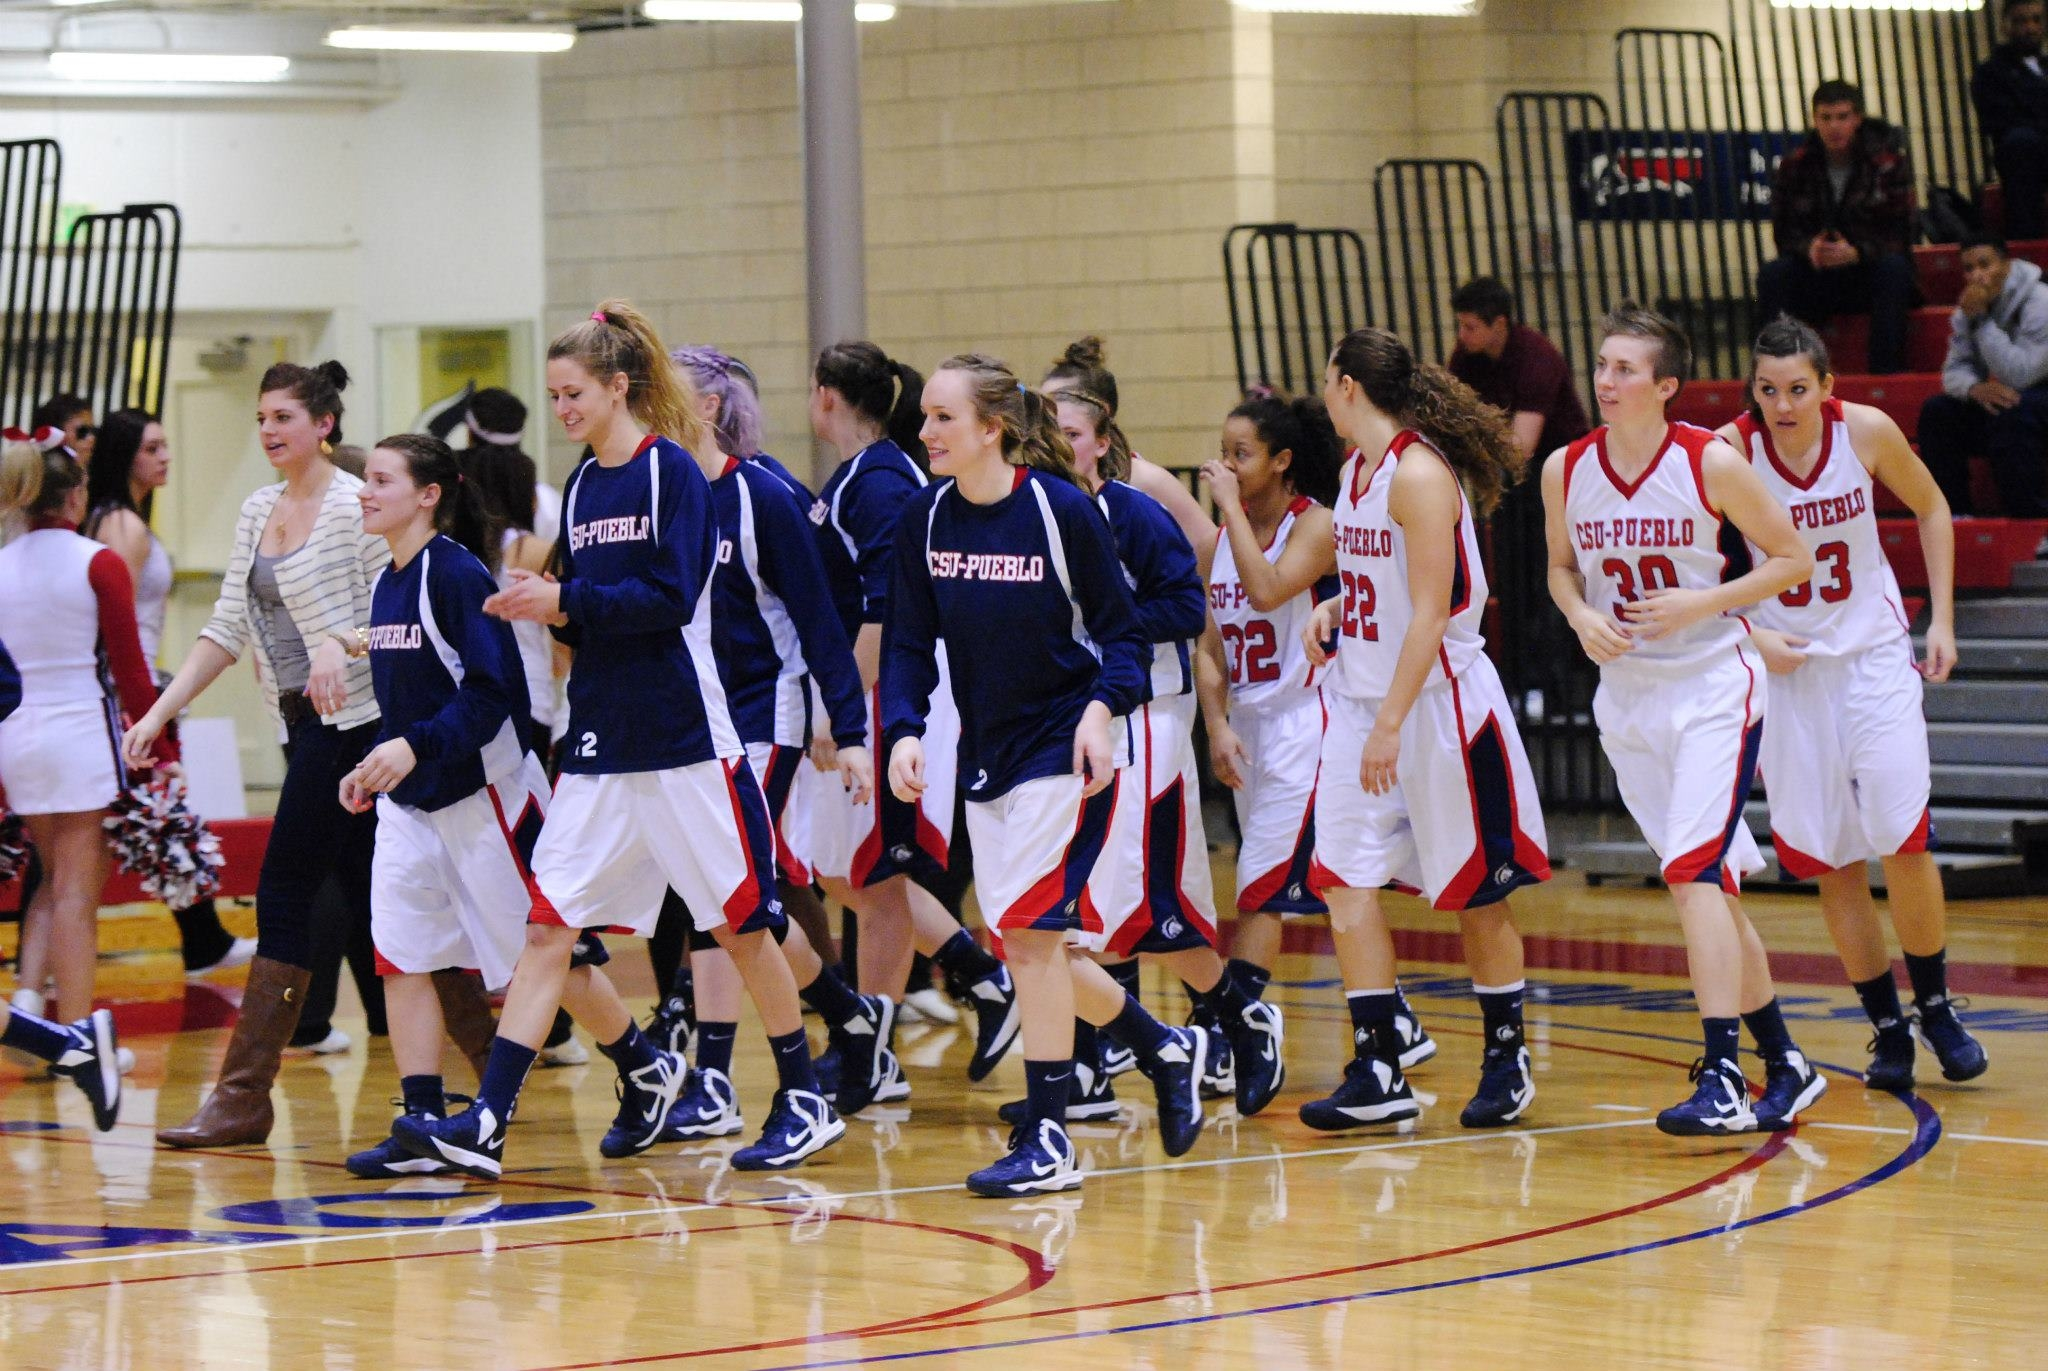 CSU-Pueblo women's basketball team walk on to the court before a game. Photo courtesy of Tyler Shomaker